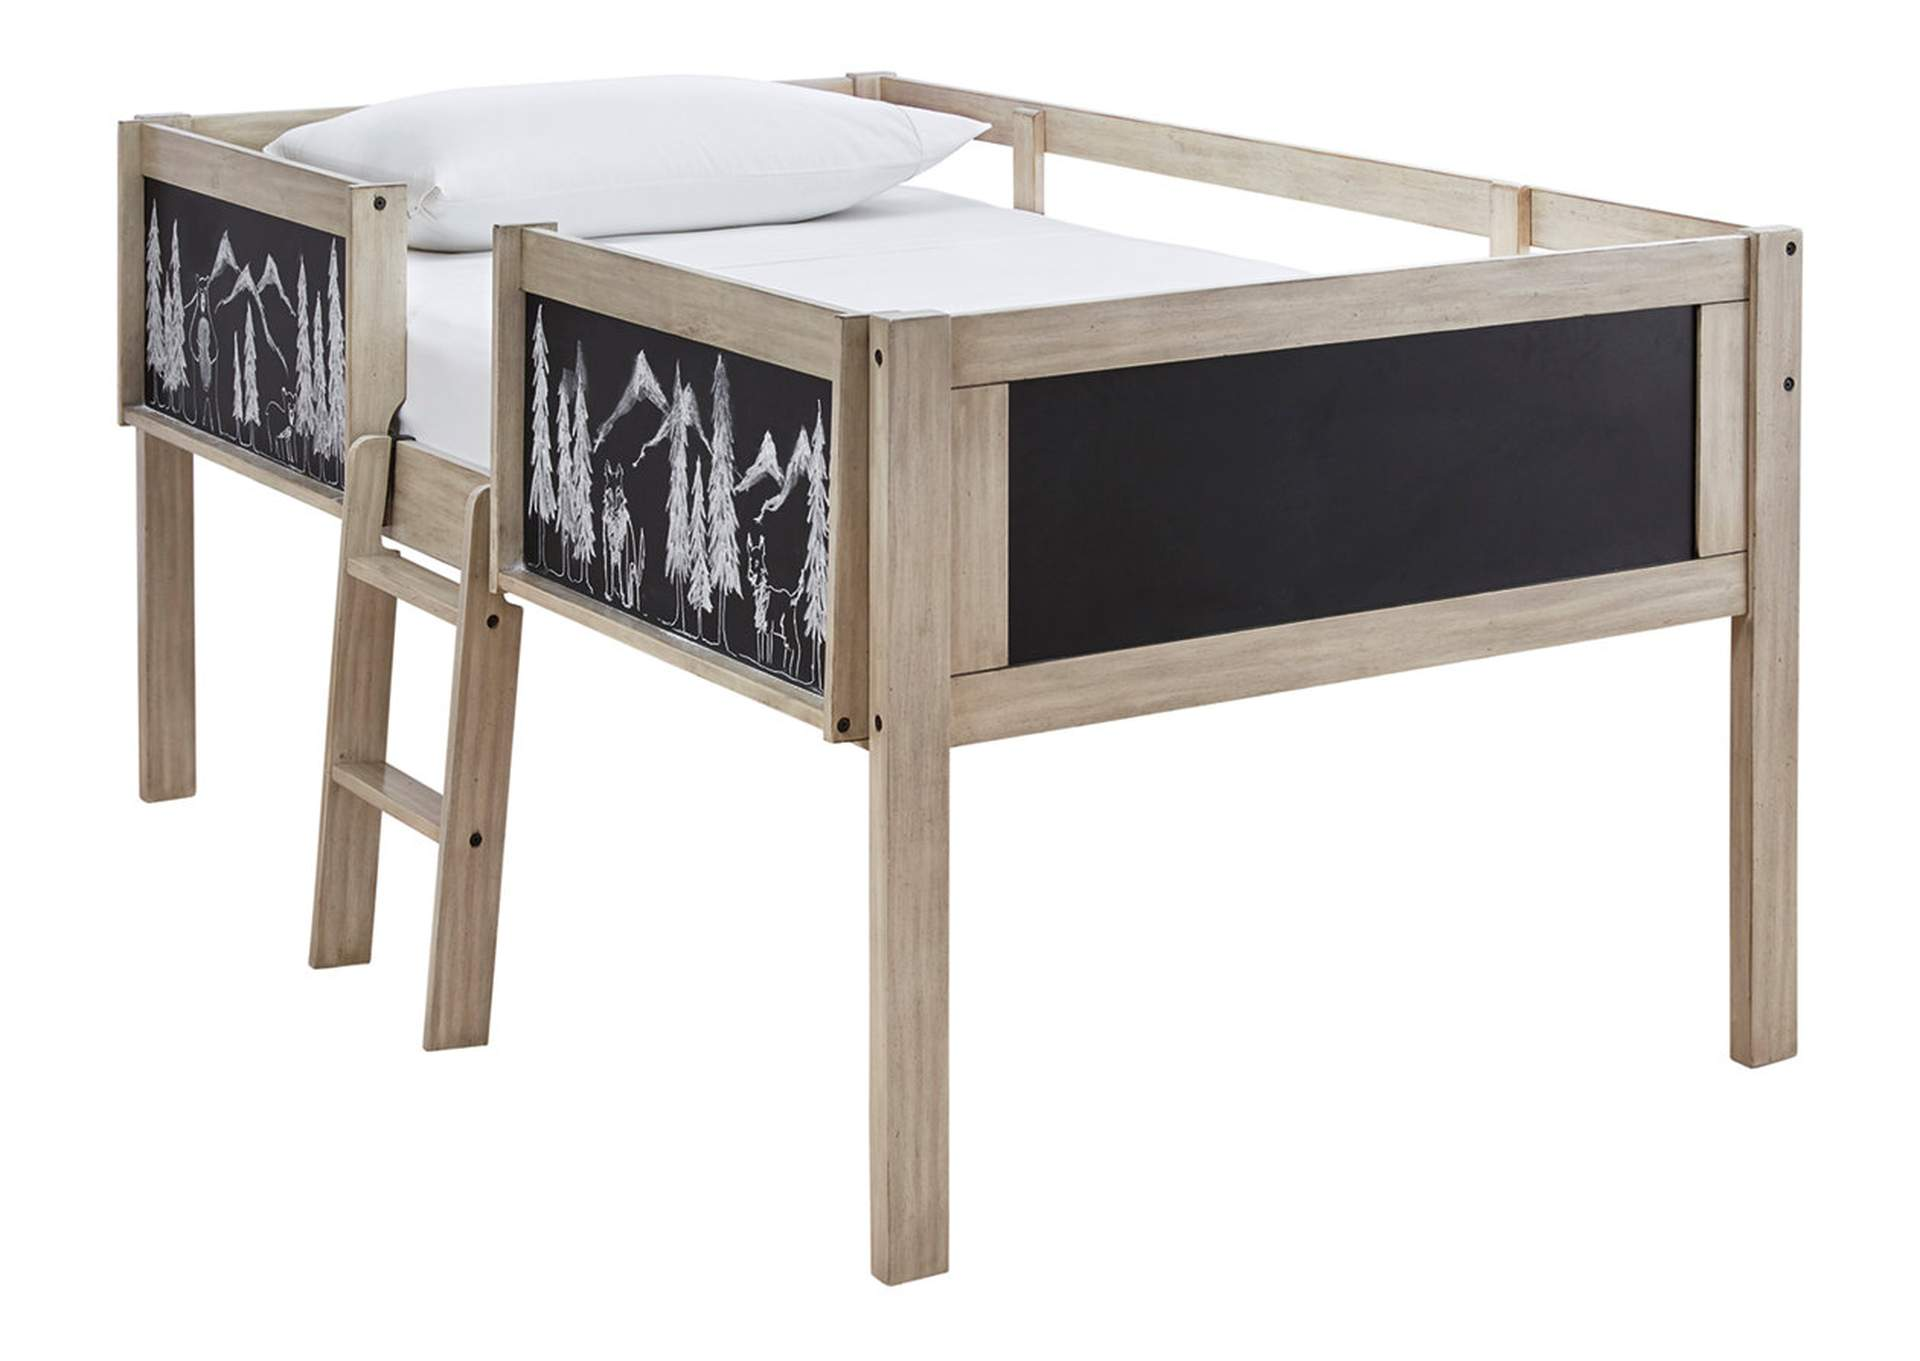 Wrenalyn Twin Loft Bed Frame,Signature Design By Ashley